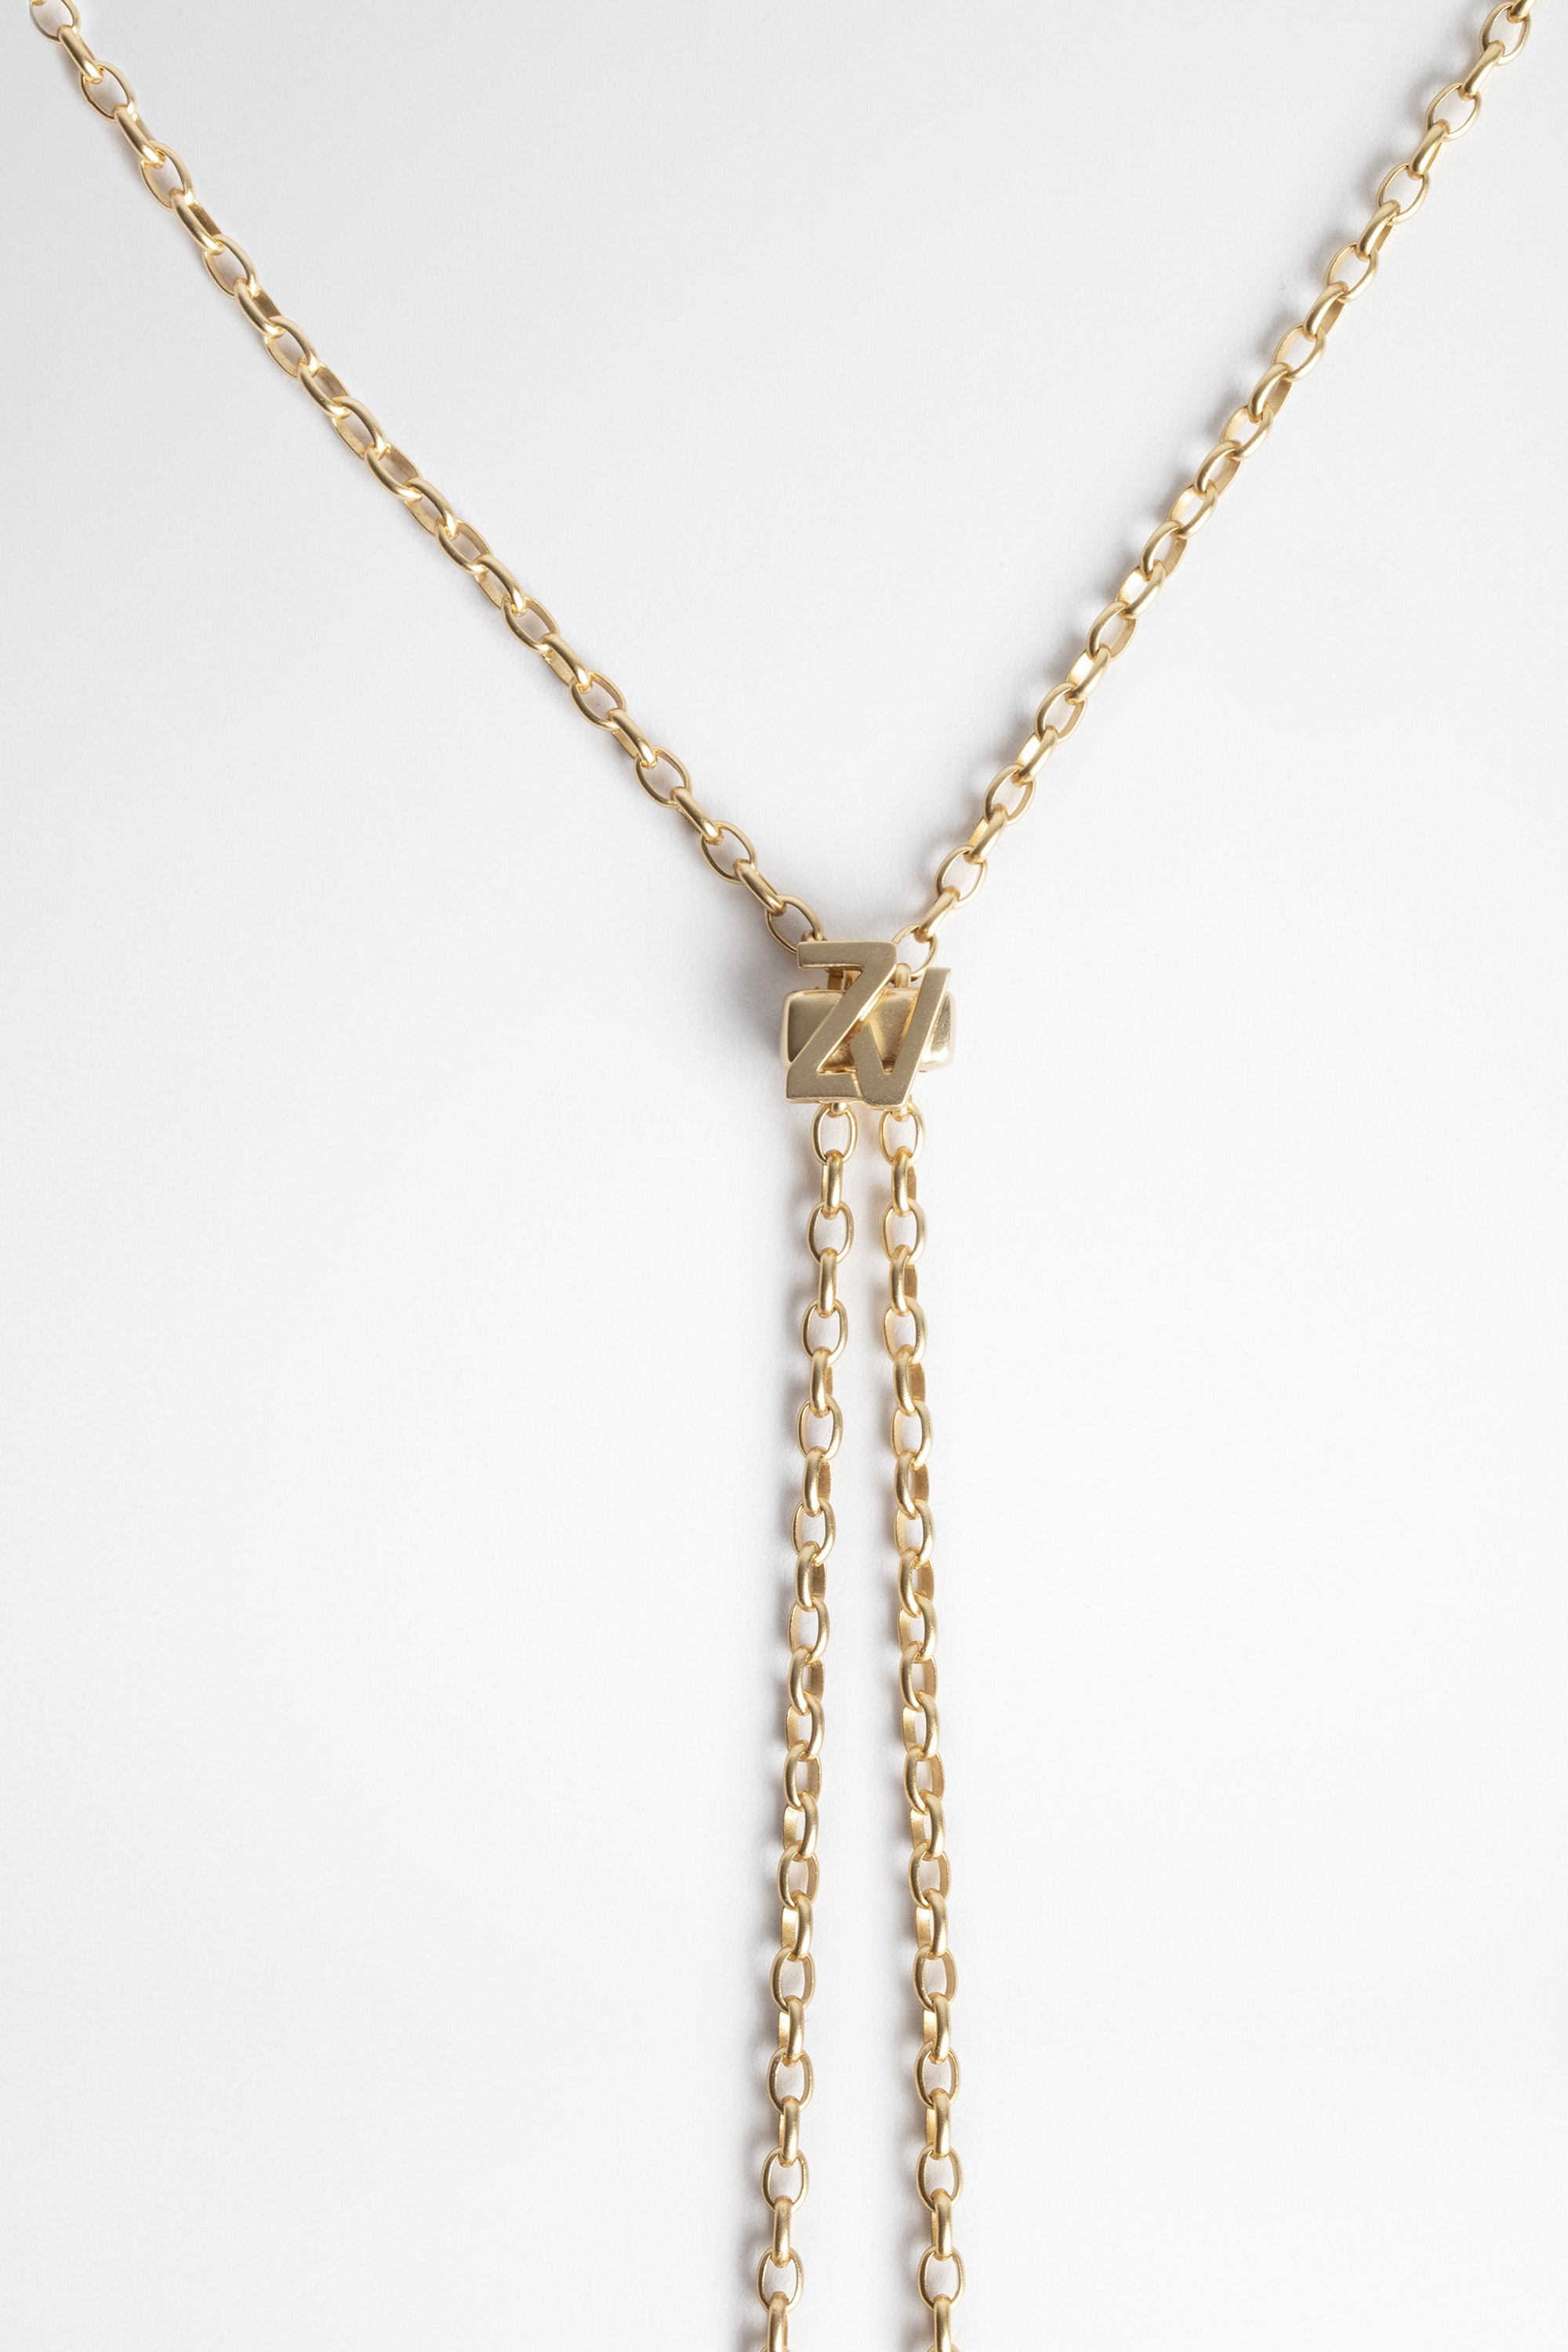 ZV Initiale necklace